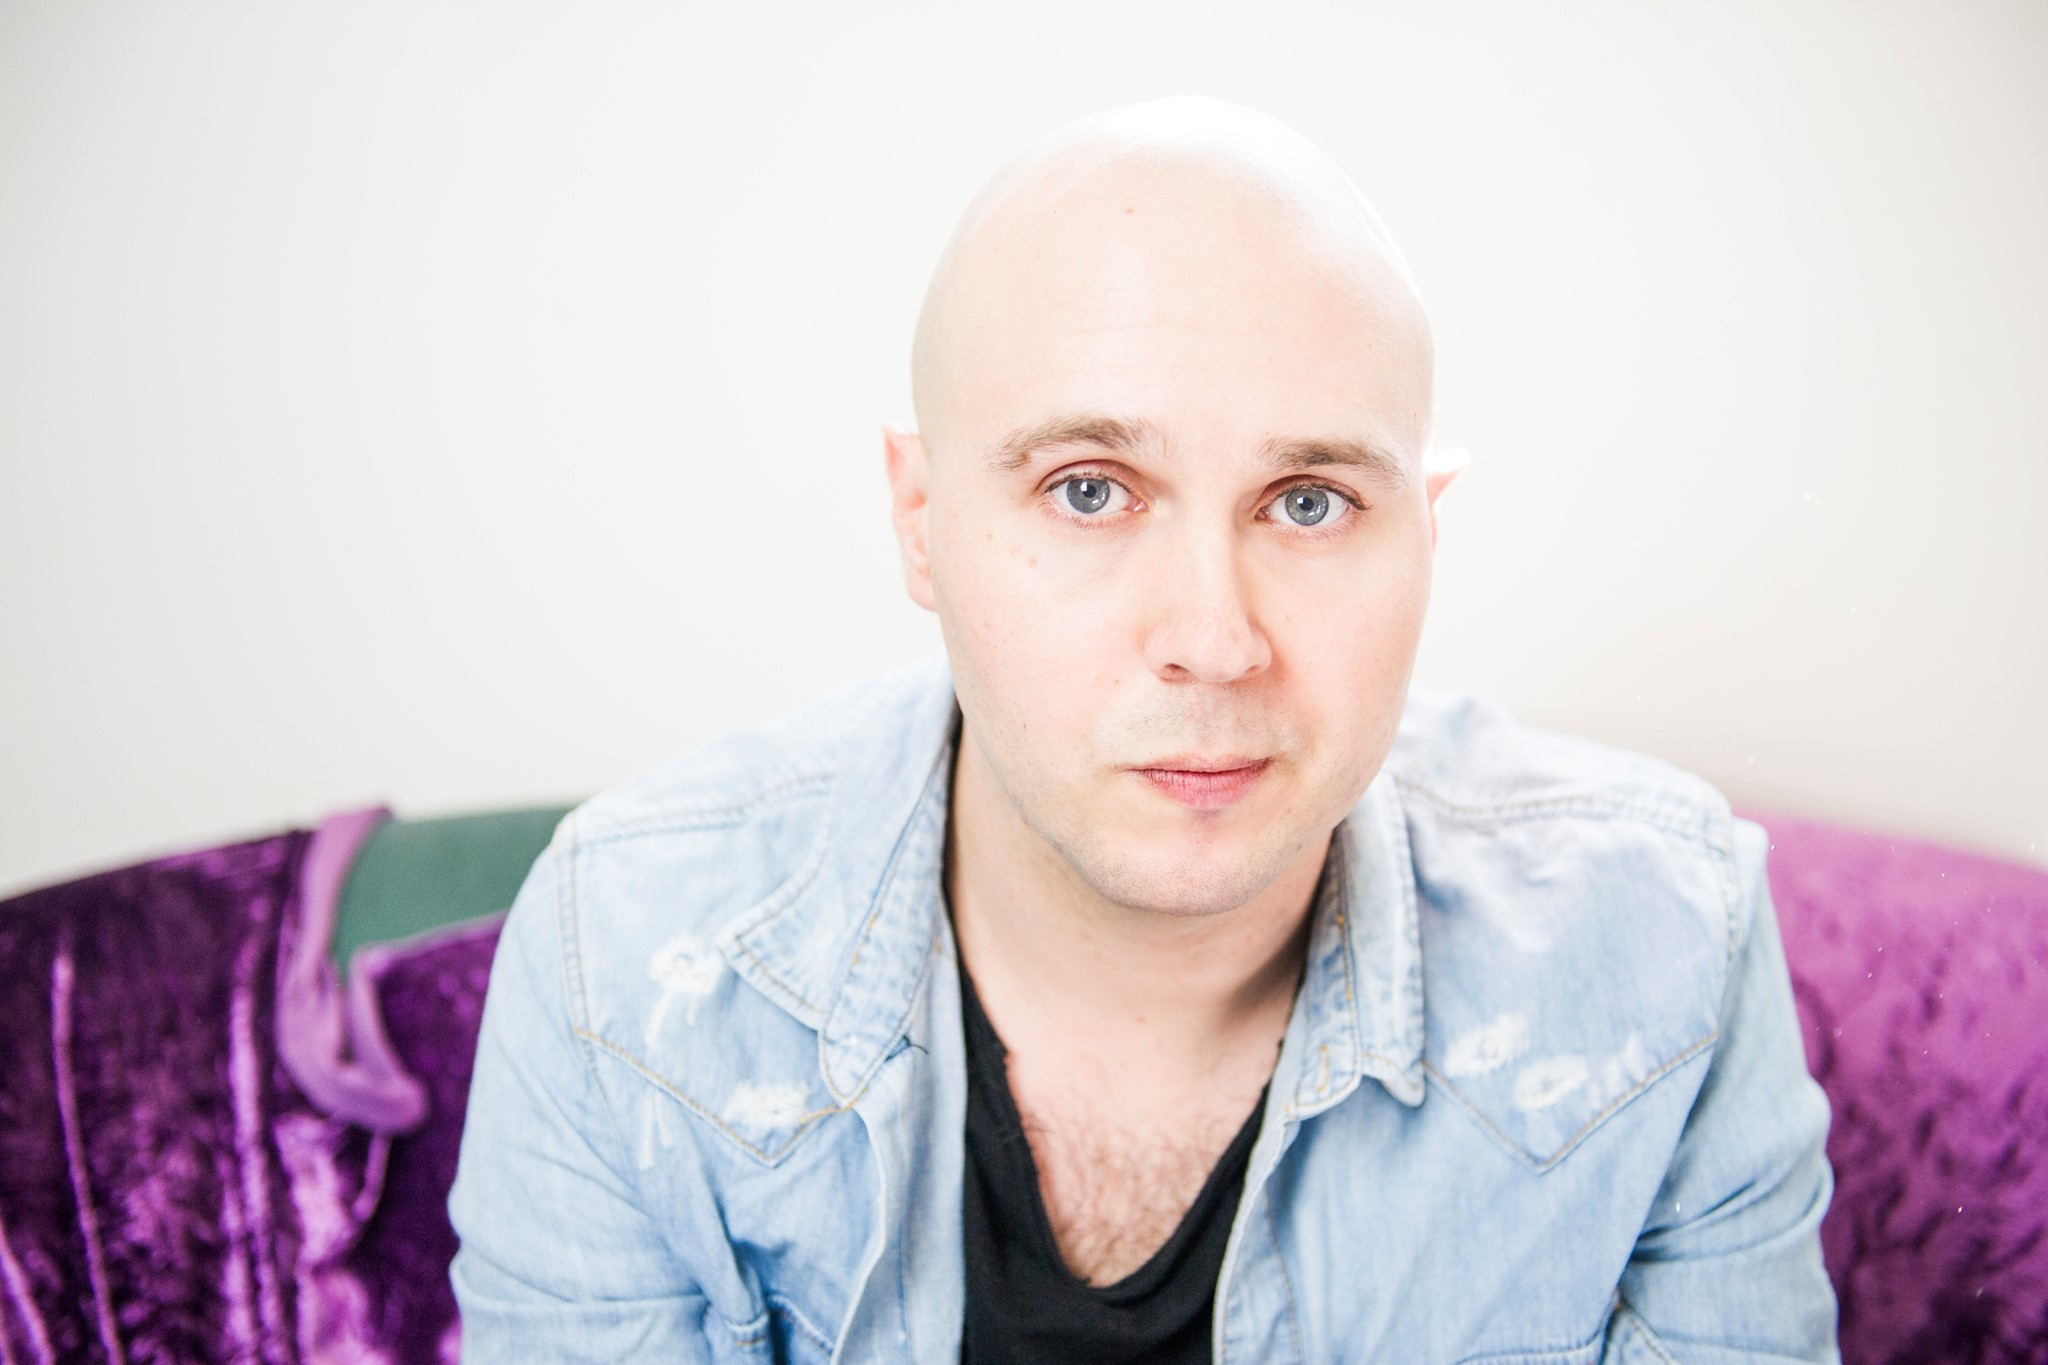 A headshot of Alex Edwards looking directly at the camera. He has a shaved head and is wearing a light denim shirt.